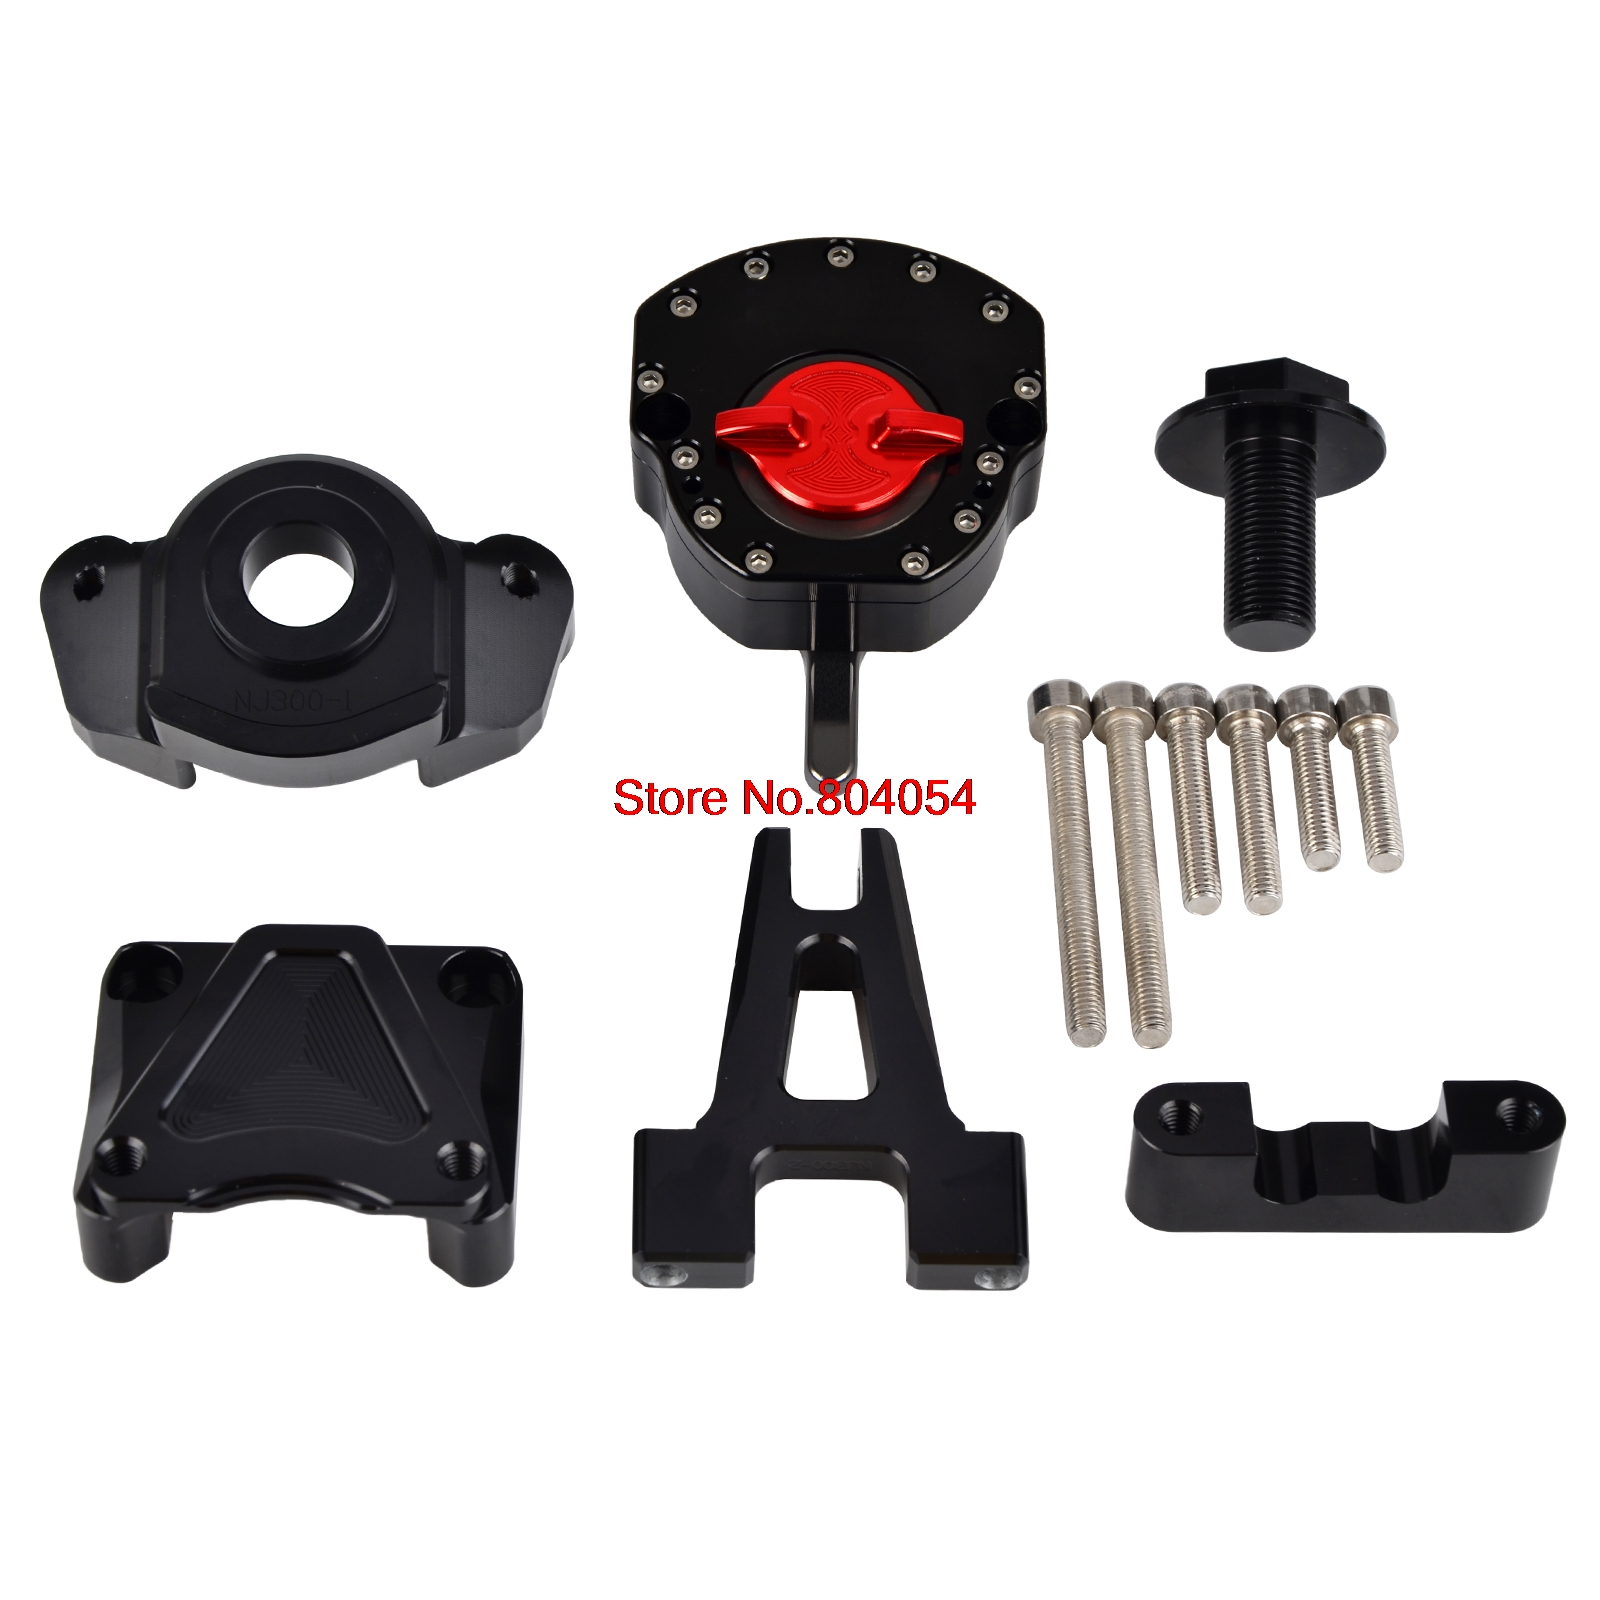 Motorcycle Steering Damper Stabilizer Mounting Bracket Kits For Kawasaki Ninja 250R 2008-2014 Ninja 300 2013-2016 cnc steering damper set stabilizer with bracket mounting assemblly for kawasaki ninja300 ninja 300 ex300 13 14 15 16 2013 2016